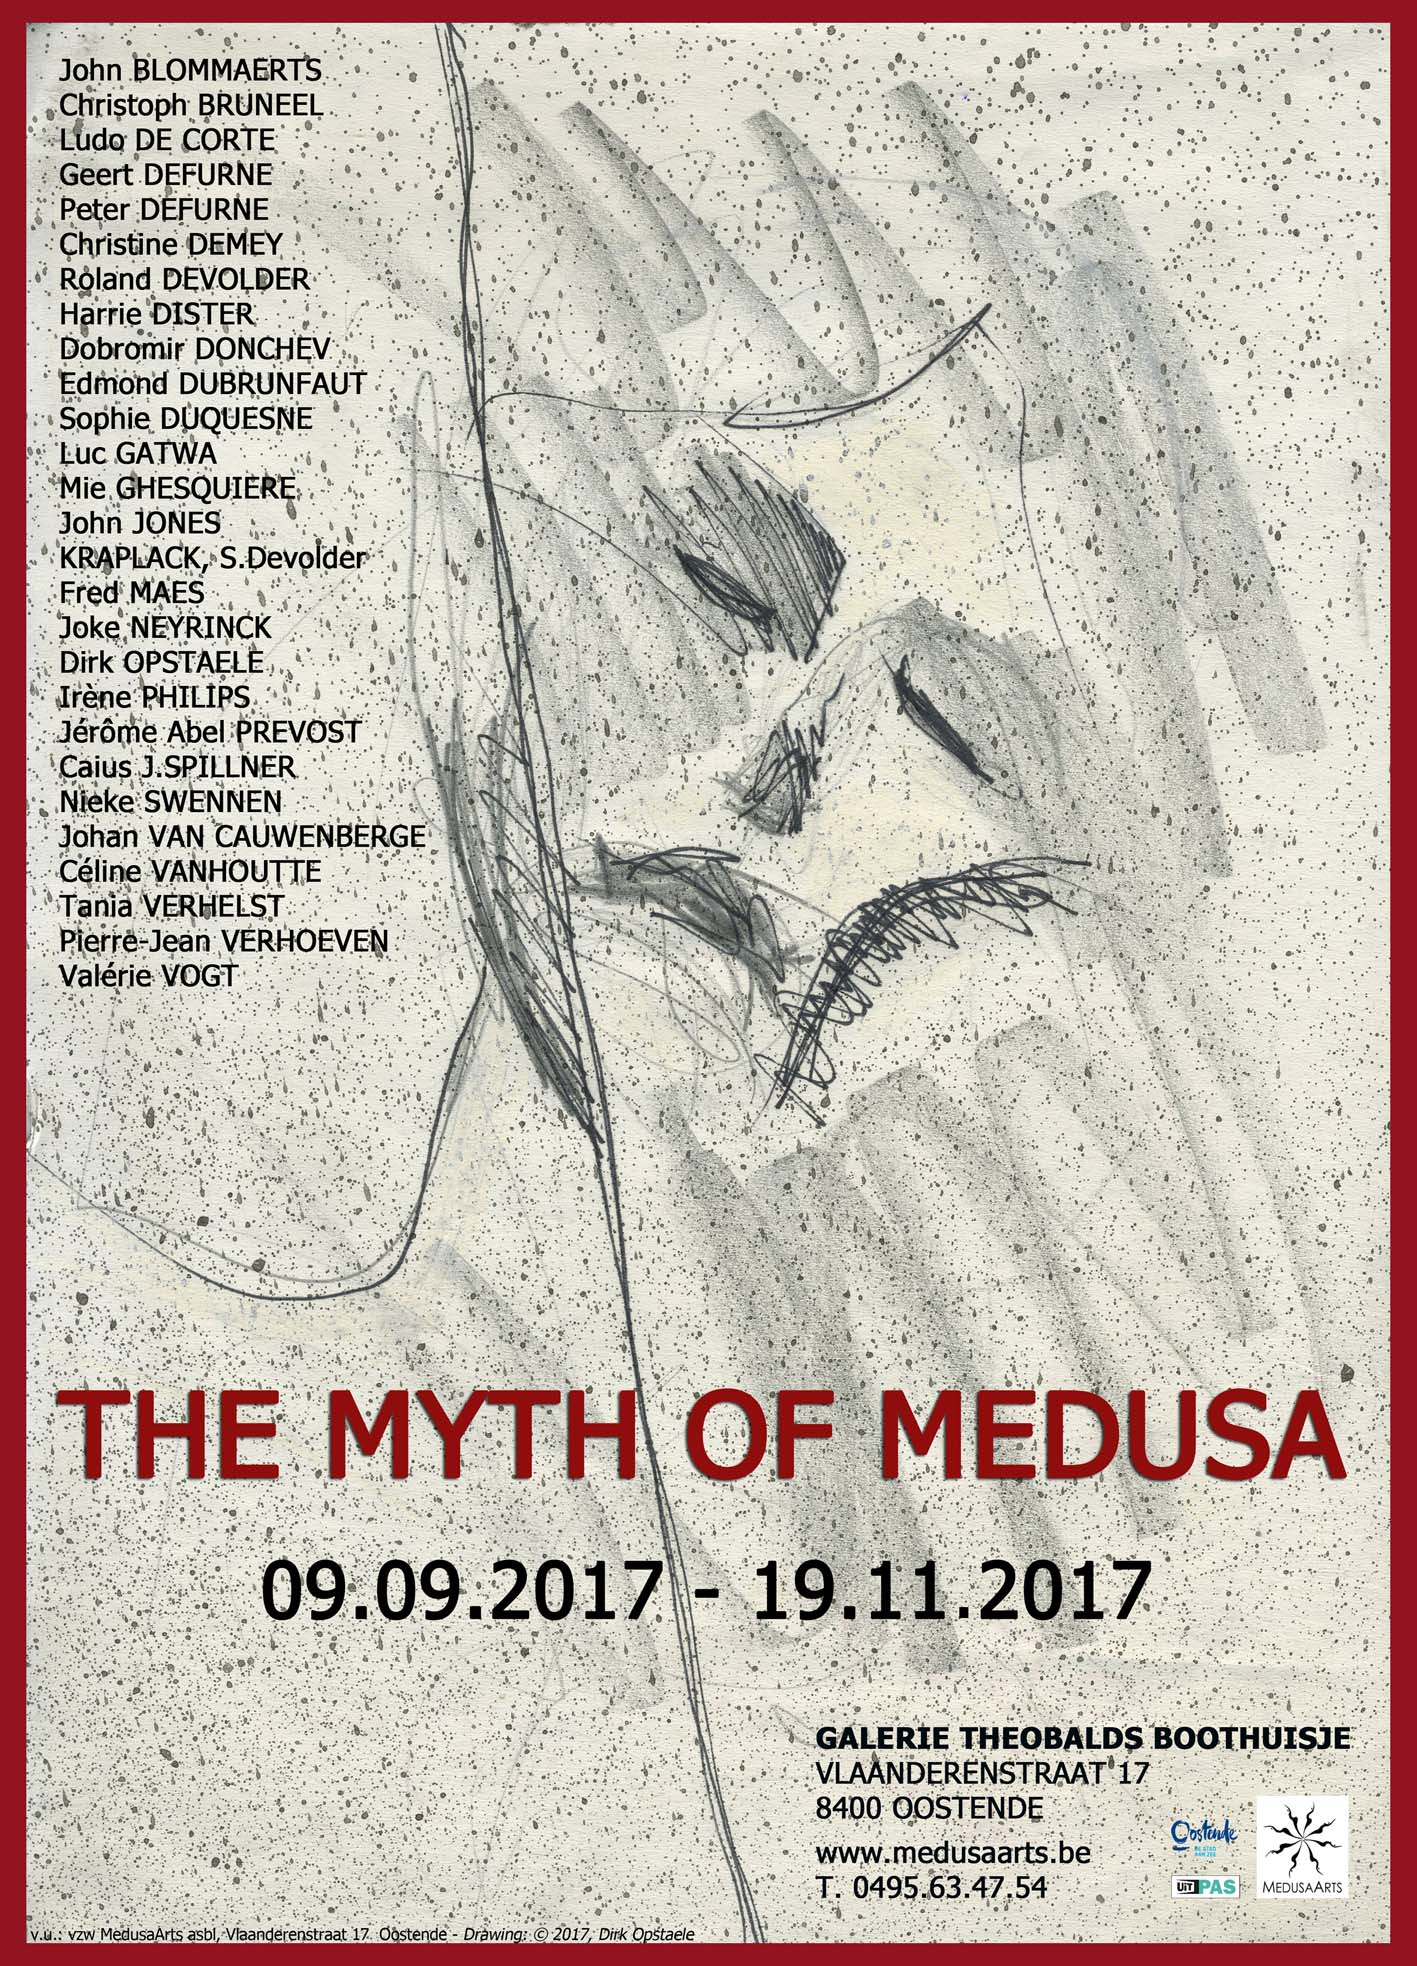 Affiche expo THE MYTH OF MEDUSA